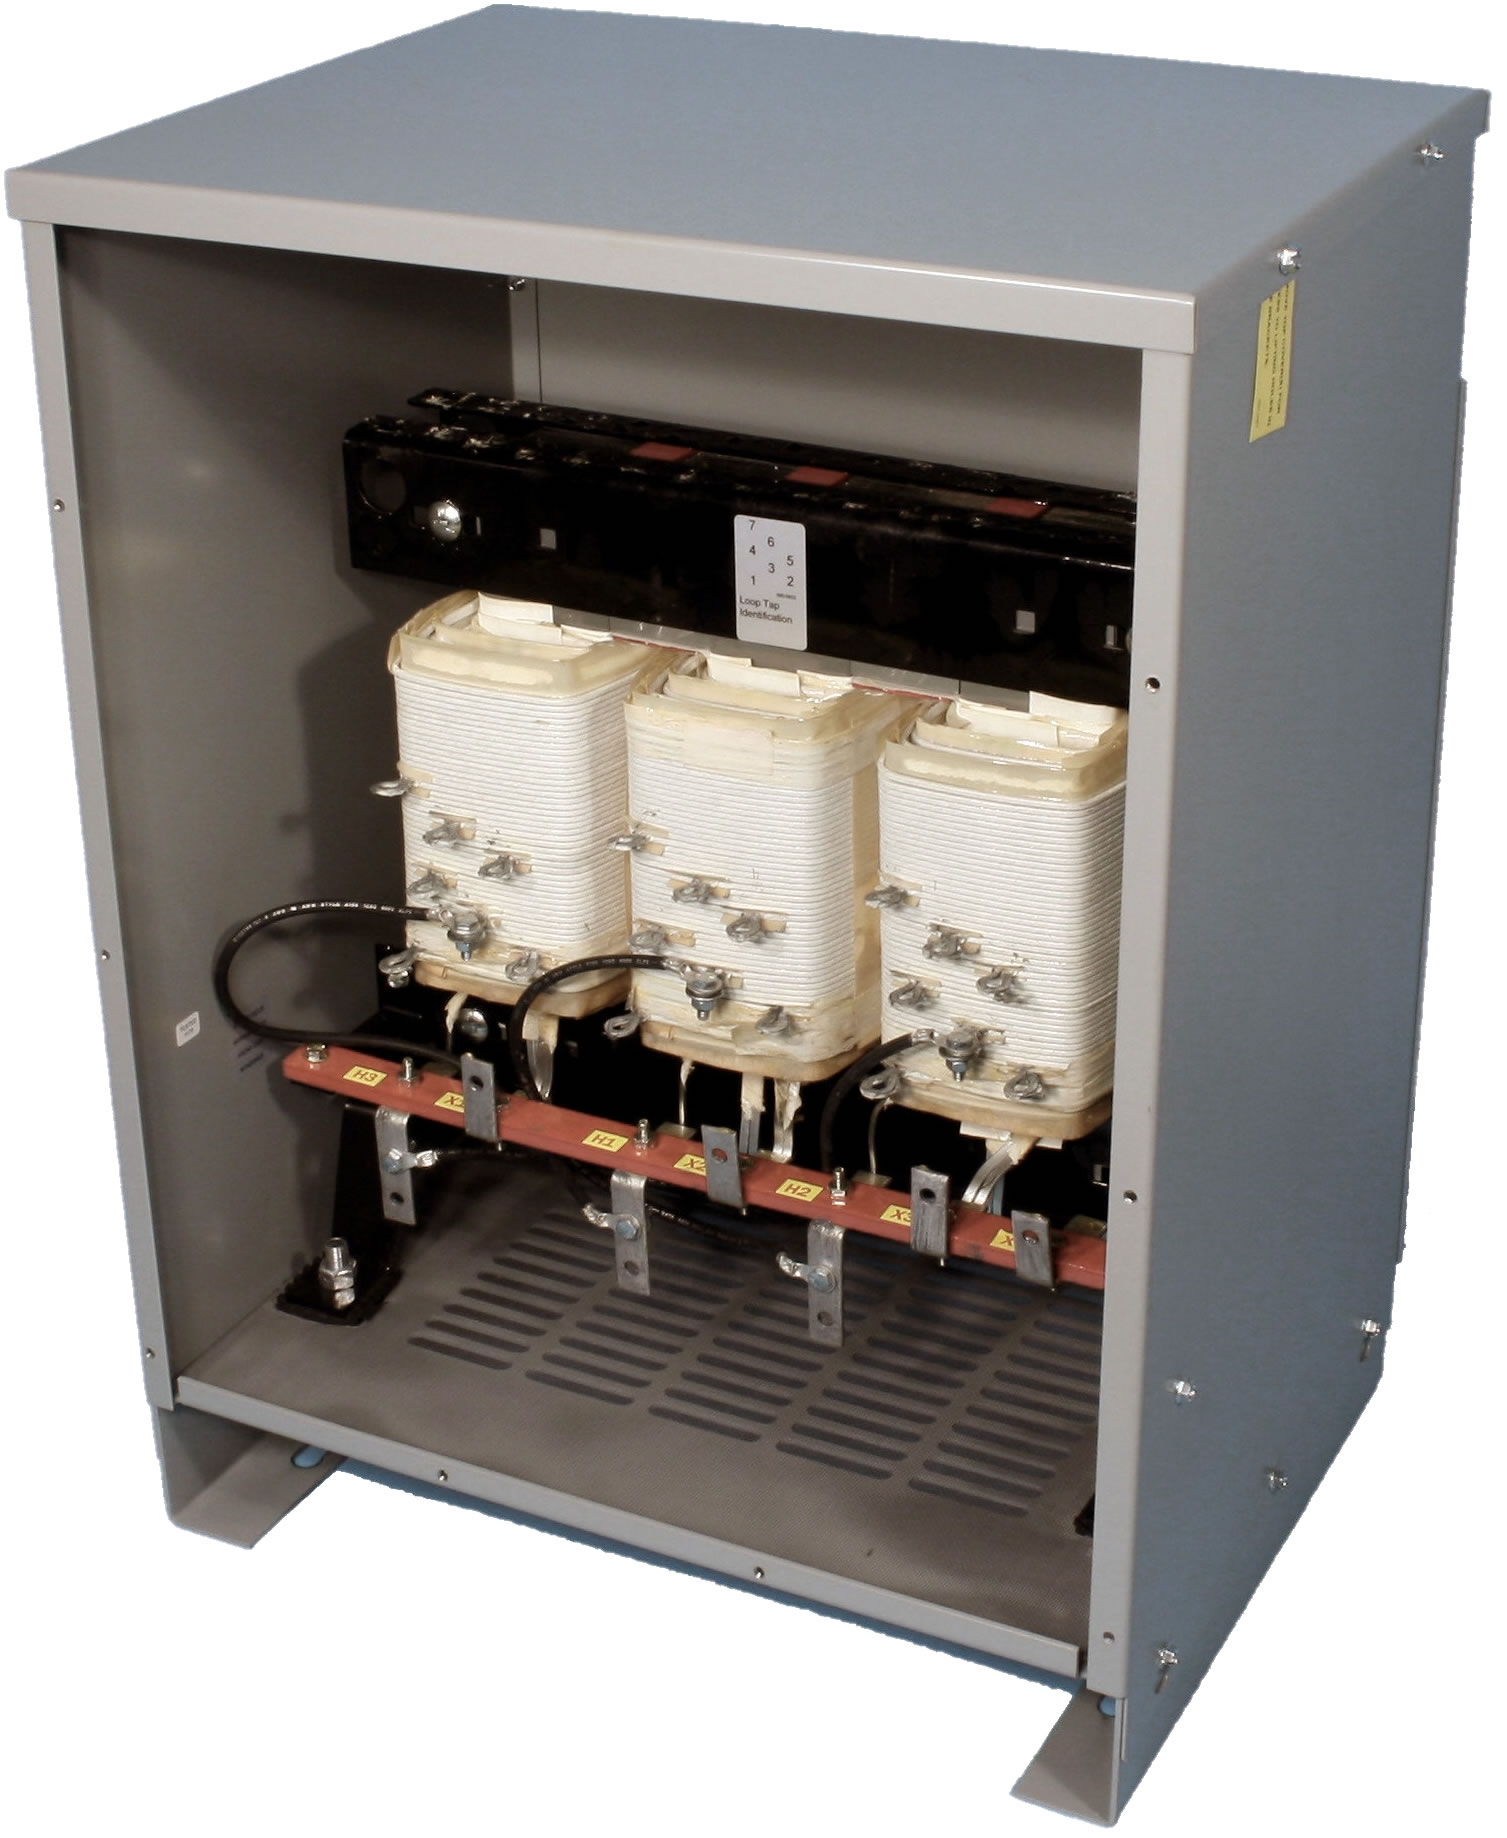 Dry Type Transformers Up To 600 Volts Inventory